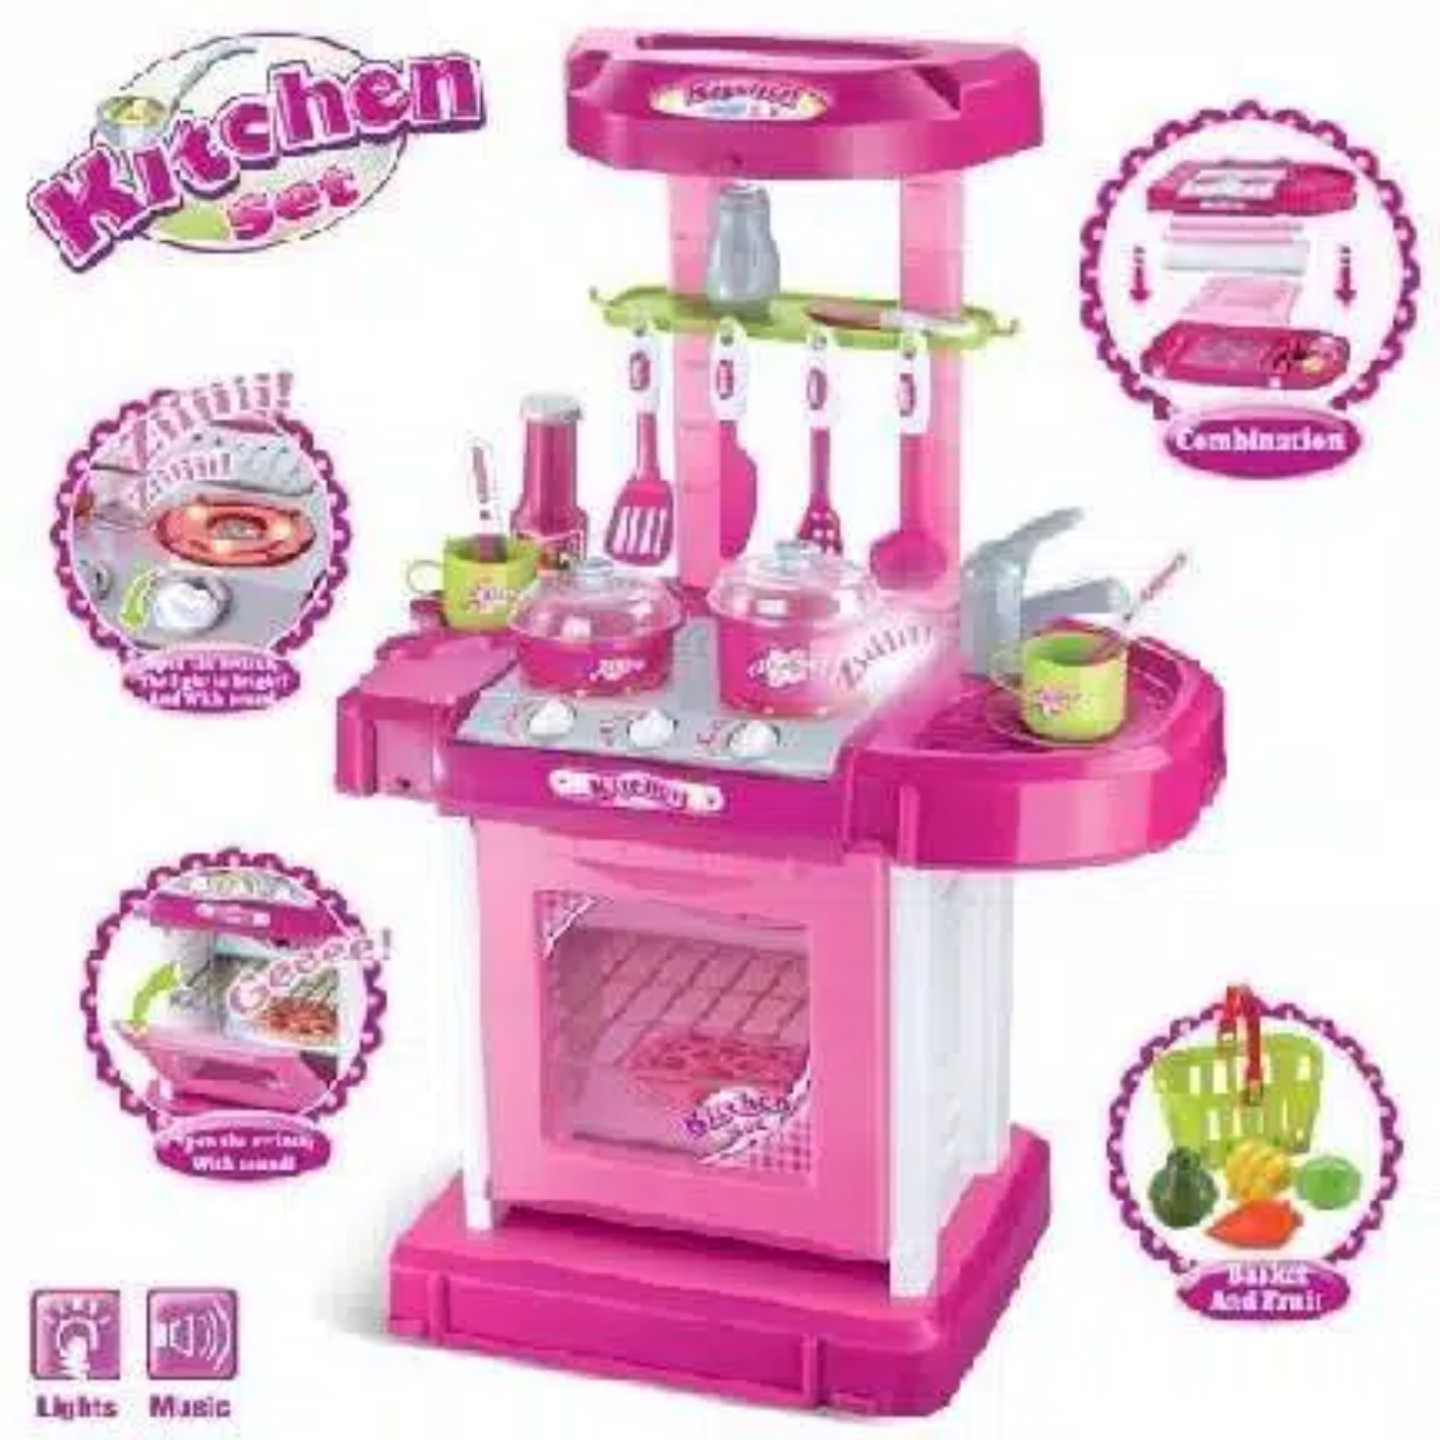 Kitchen Set Warna Orange: Mainan Anak - Kitchen Set Koper Warna Pink